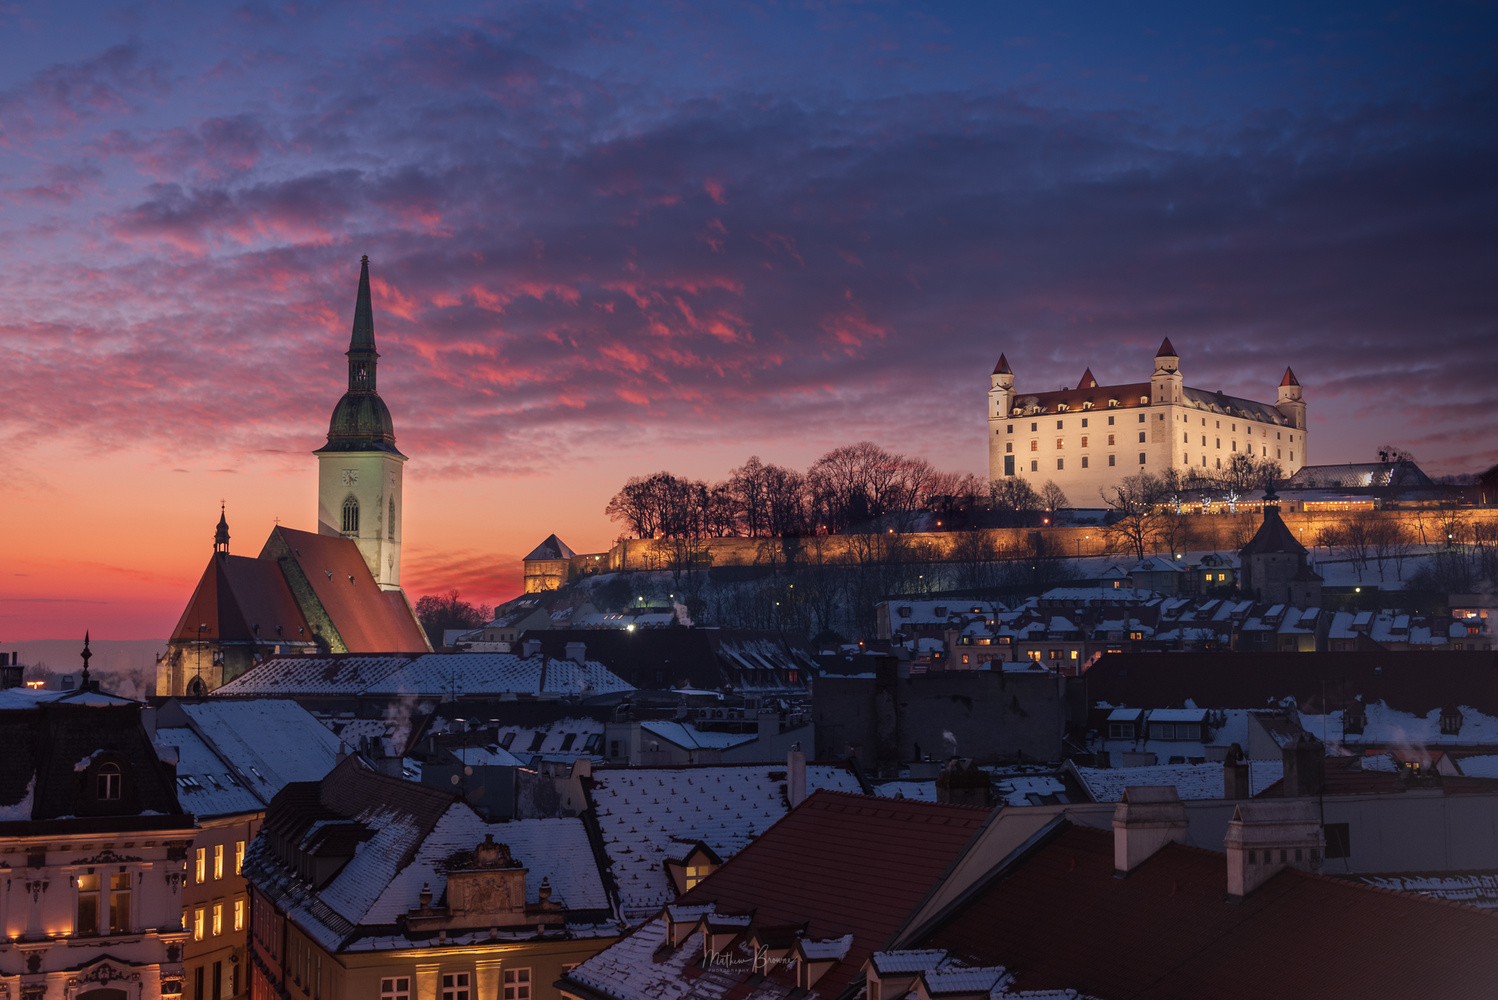 Bratislava Winter Sunset by Mathew Browne